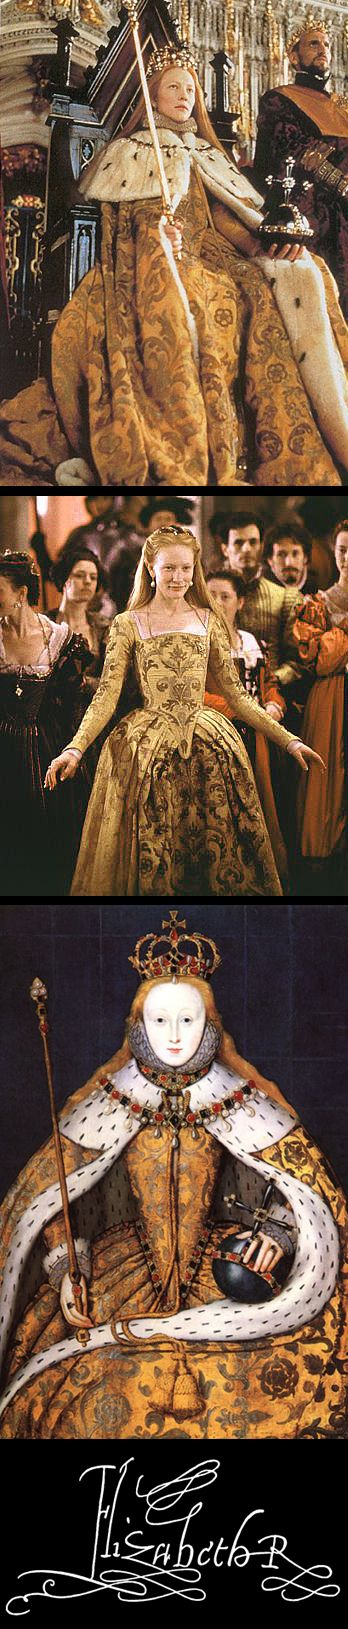 The coronation costume from the movie, 'Elizabeth', compared with the real article of clothing, shown in The Coronation Portrait (NPG, London).